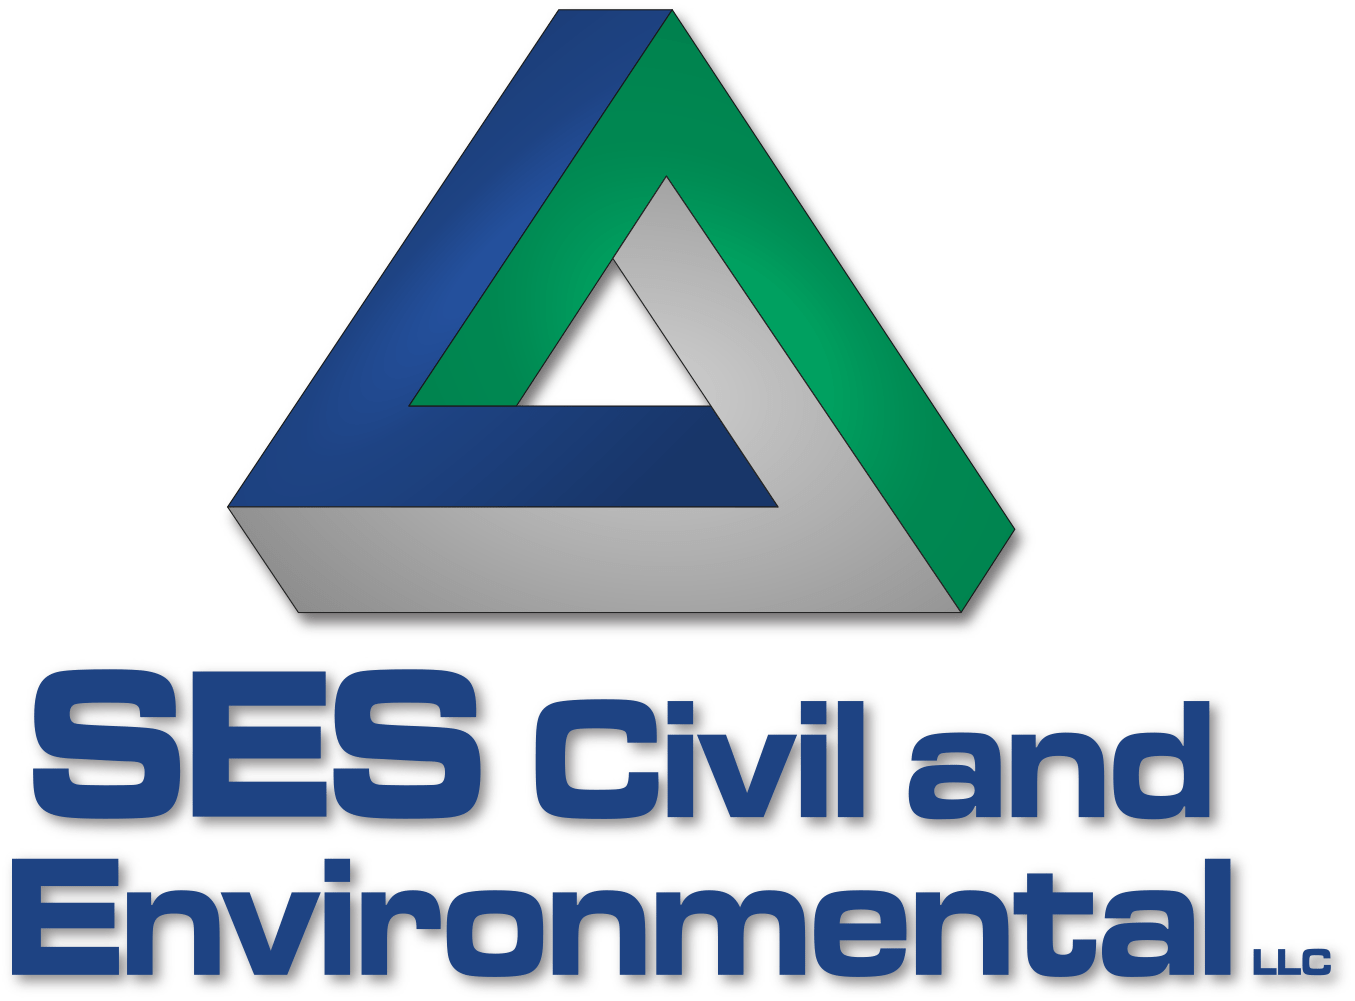 SES Civil and Environmental